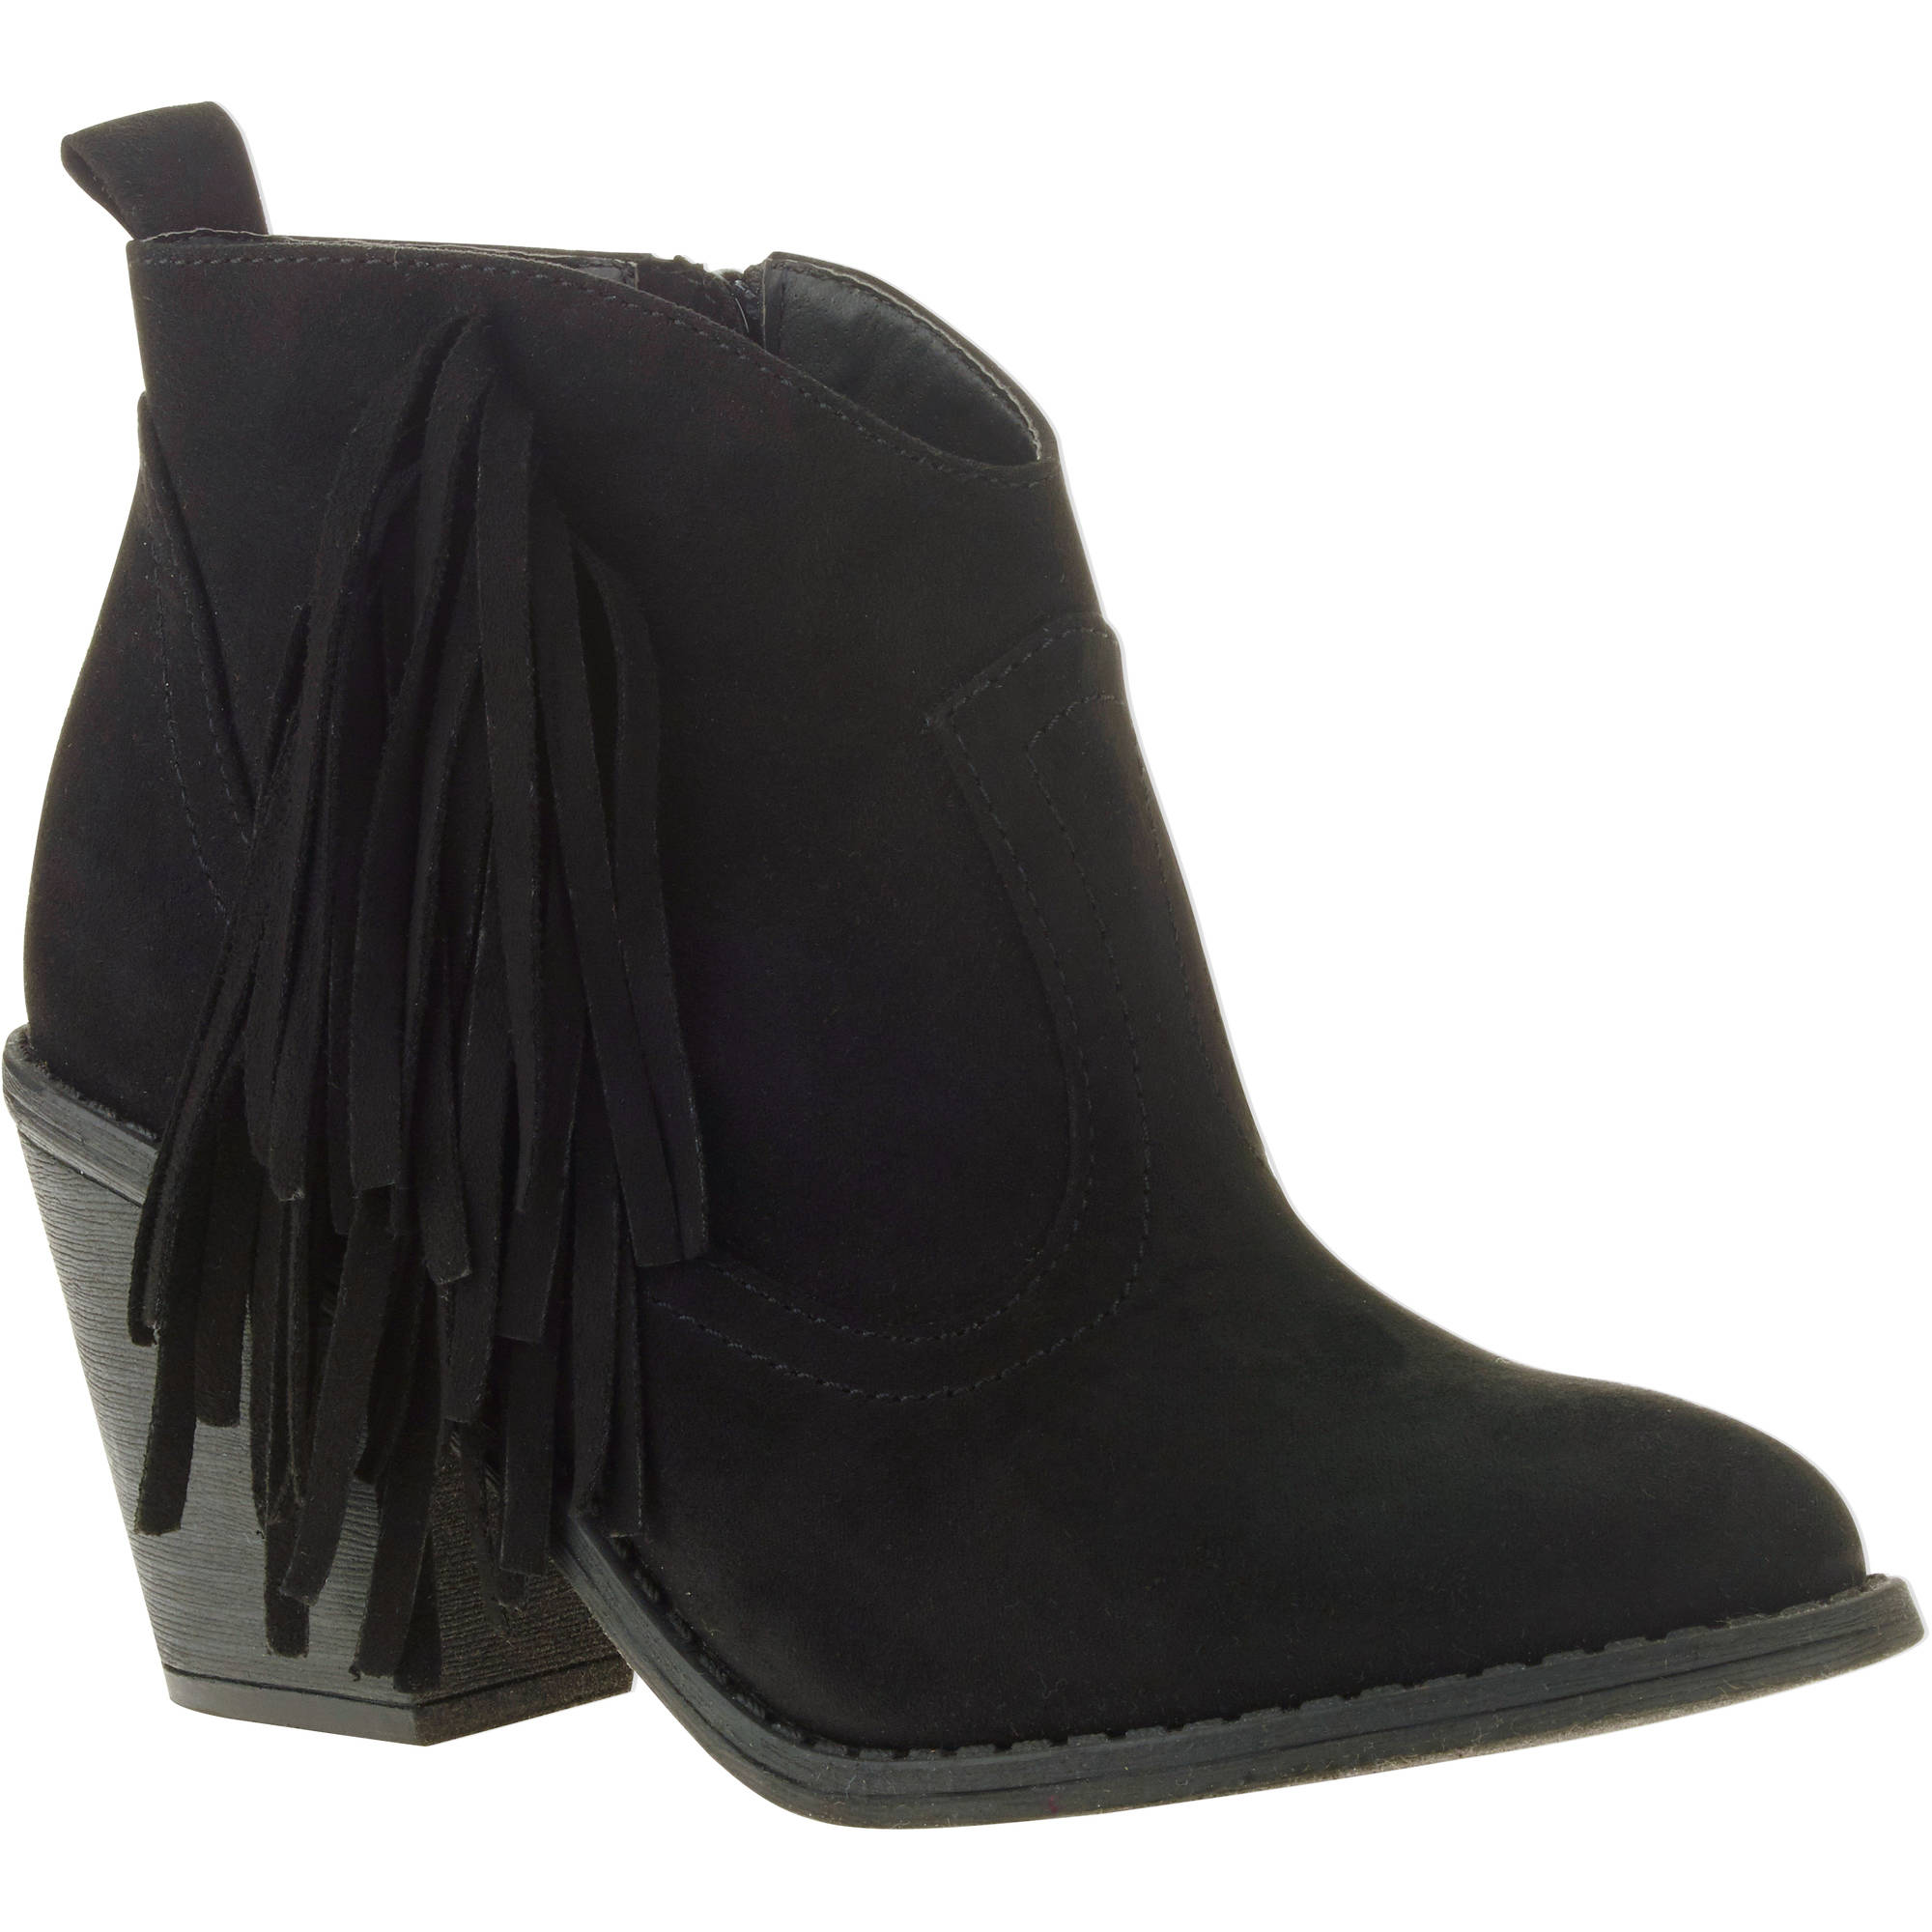 Faded Glory Women's Heel Boot ONLINE ONLY